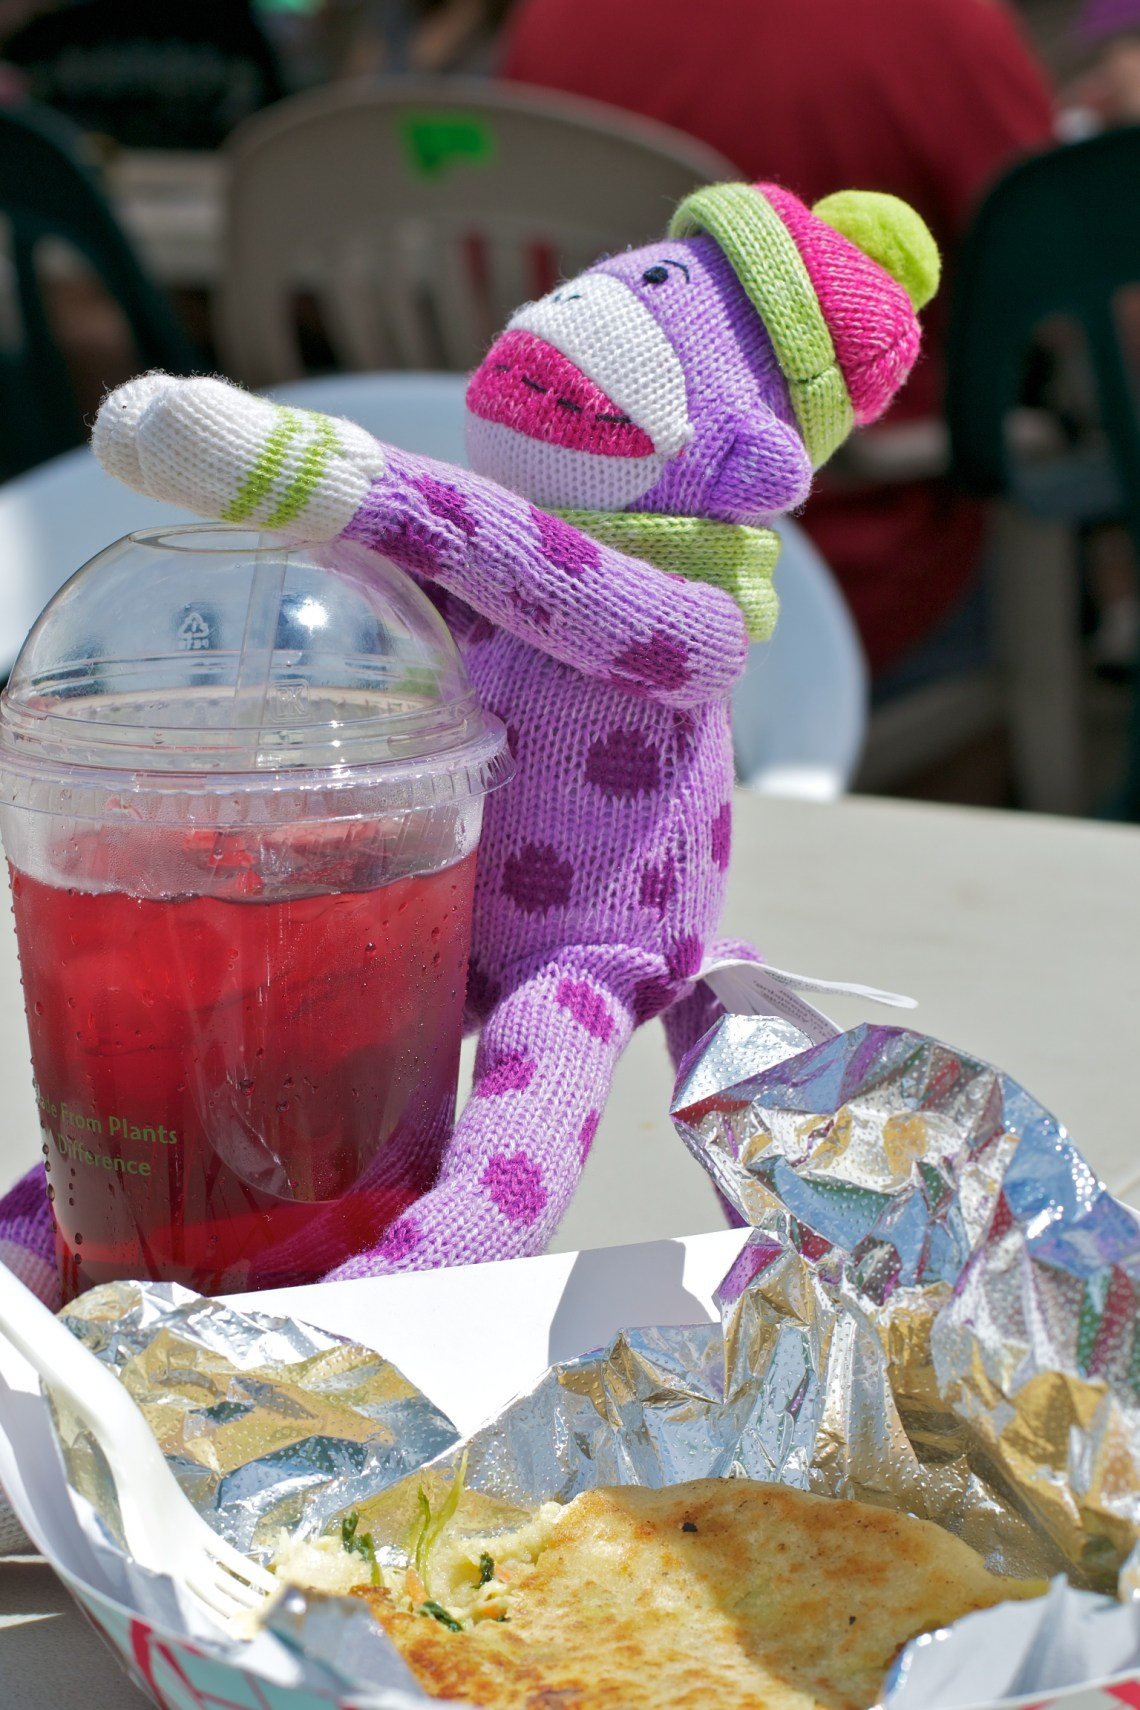 Sock Monkey Enjoys Lunch at the Farmers Market